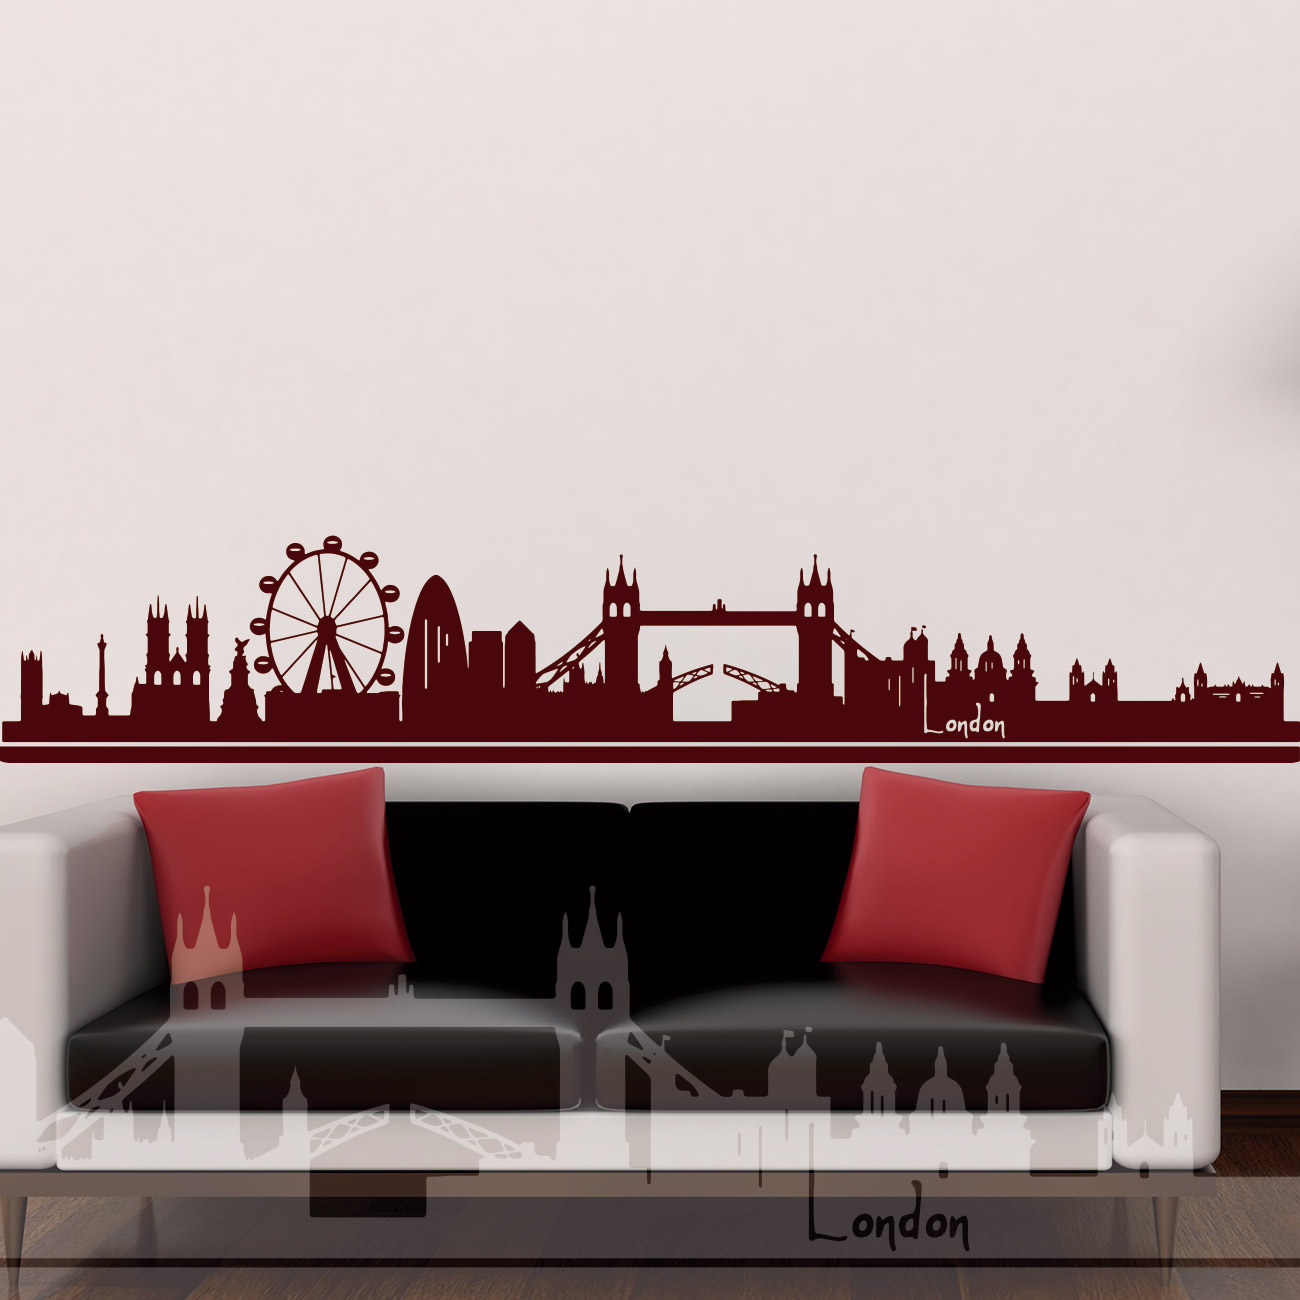 skyline wandtattoo london england sunnywall online shop. Black Bedroom Furniture Sets. Home Design Ideas